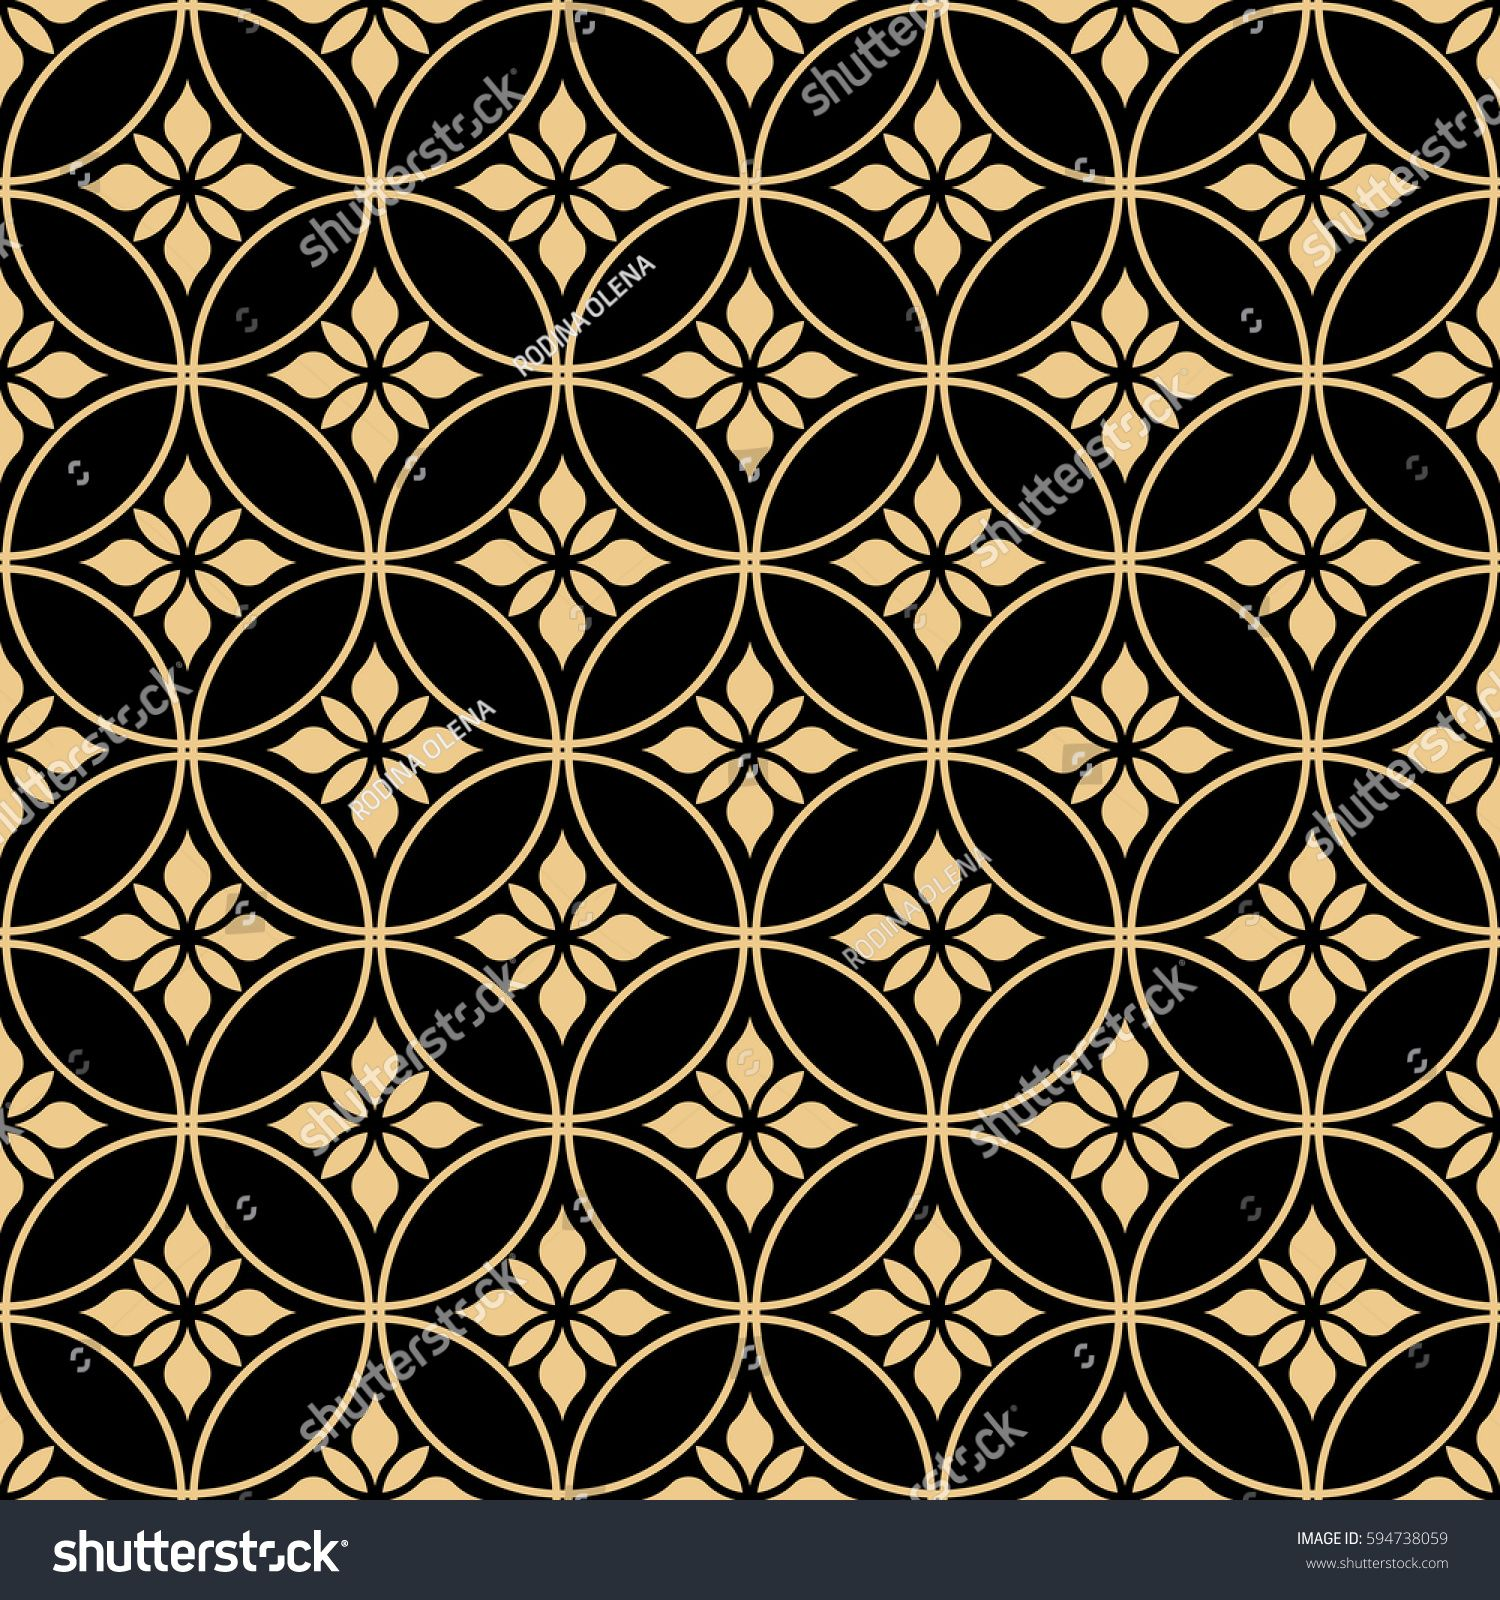 Seamless Abstract Floral Pattern Vector Background Gold